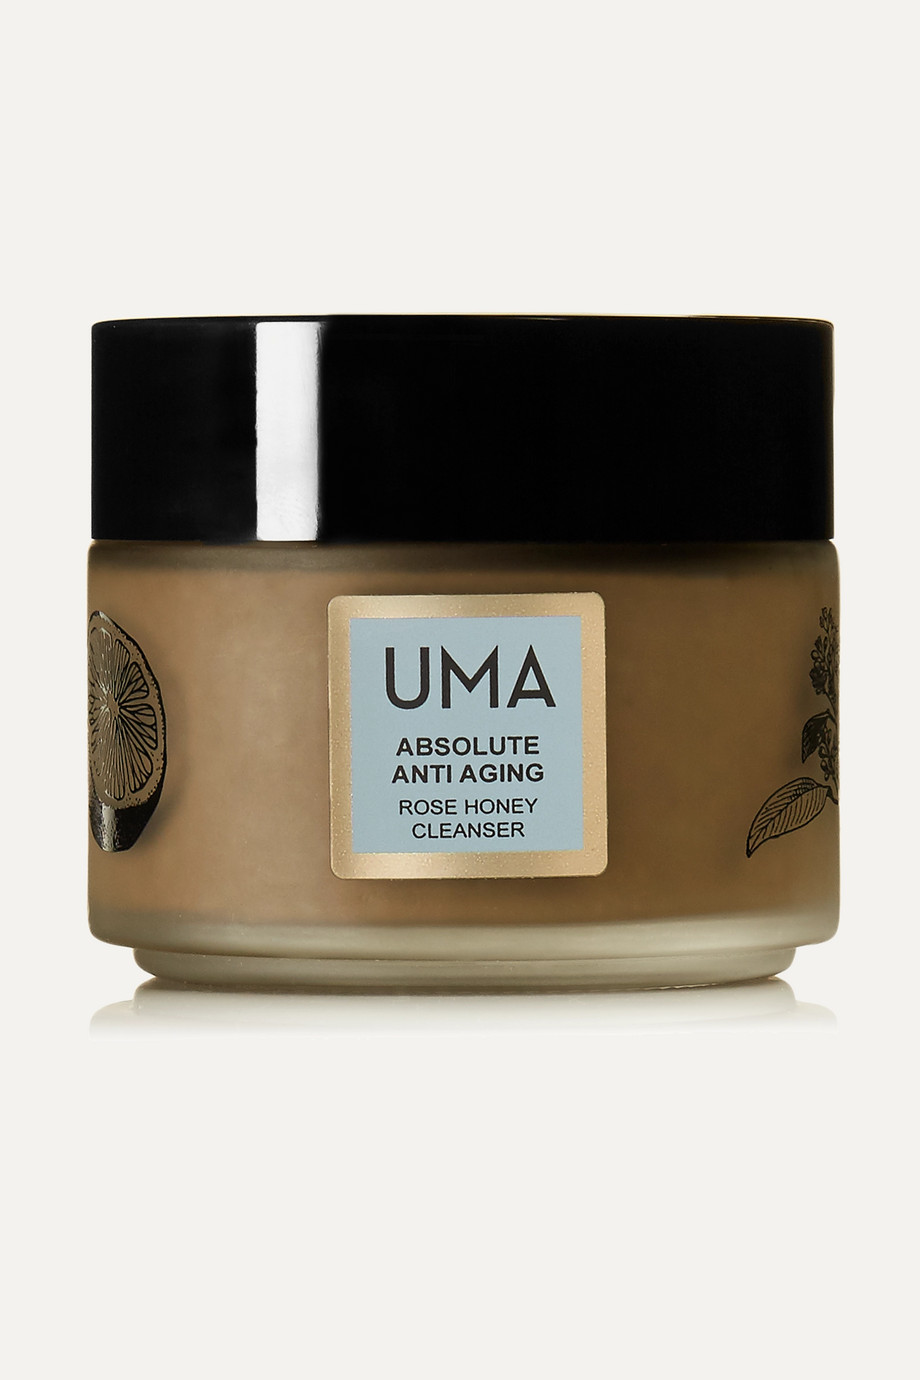 UMA Oils + NET SUSTAIN Absolute Anti-Aging Rose Honey Cleanser, 100ml